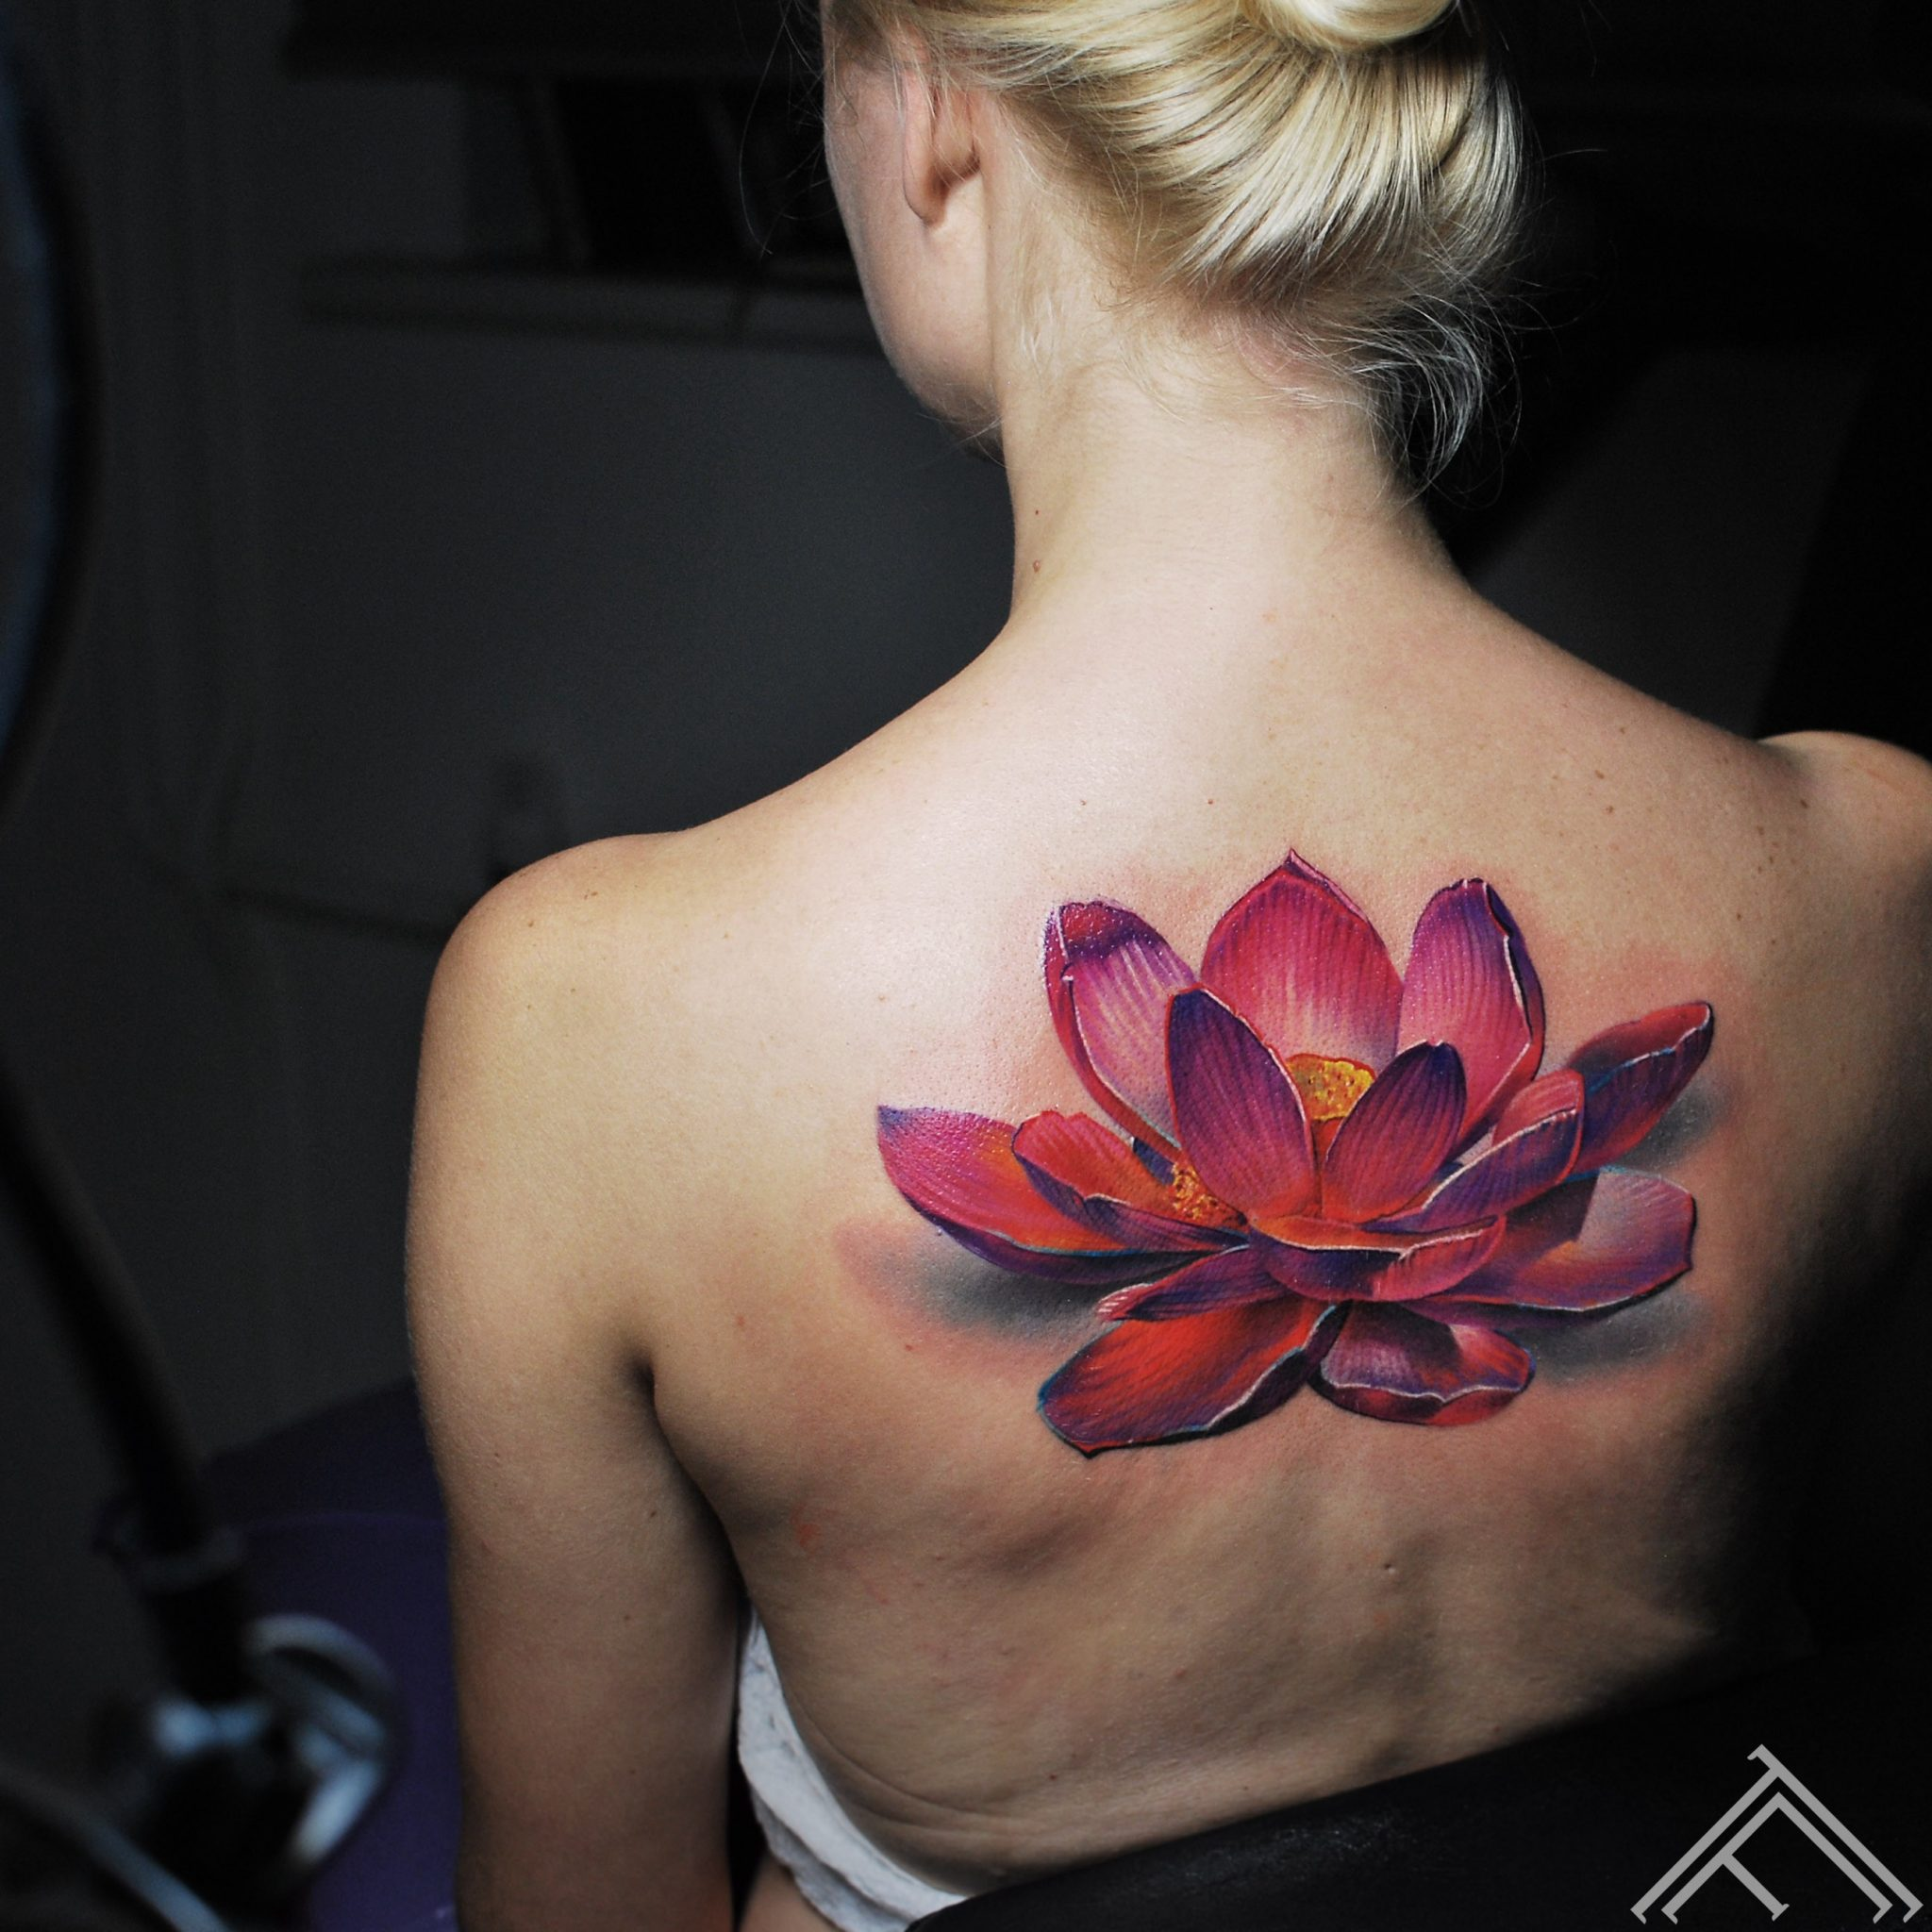 lotus-lotoss-flower-zieds-tattoo-tetovejums-riga-marispavlo-tattoofrequency